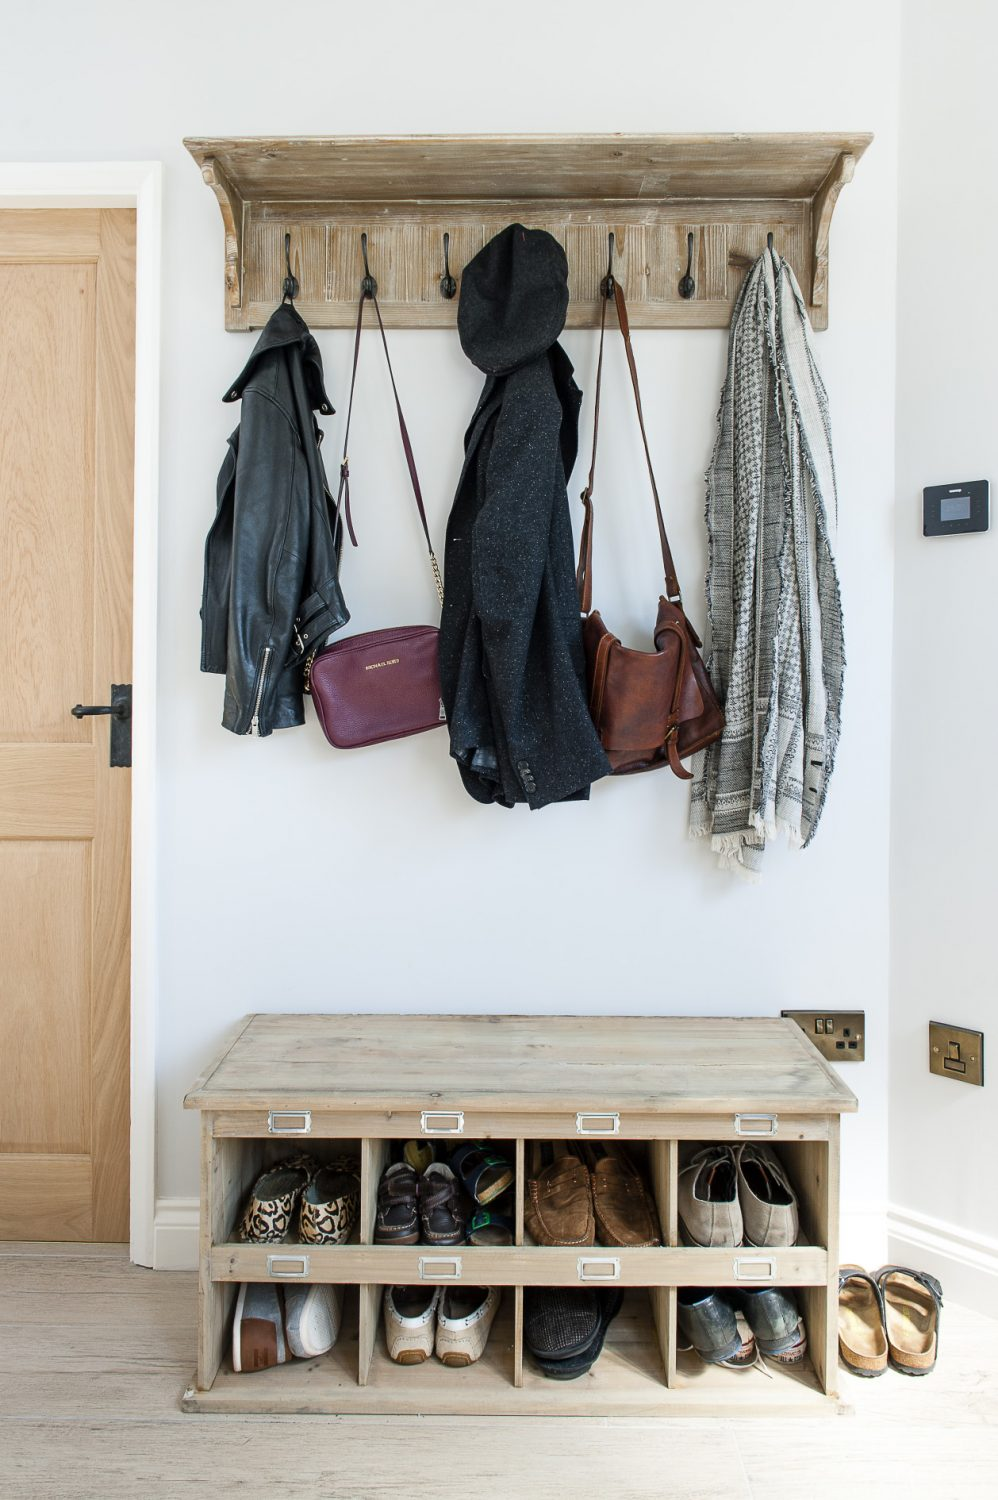 The rustic shoe cabinet in the hall is from Willow & Stone and the coat rack above from Loaf, which is based in Falmouth